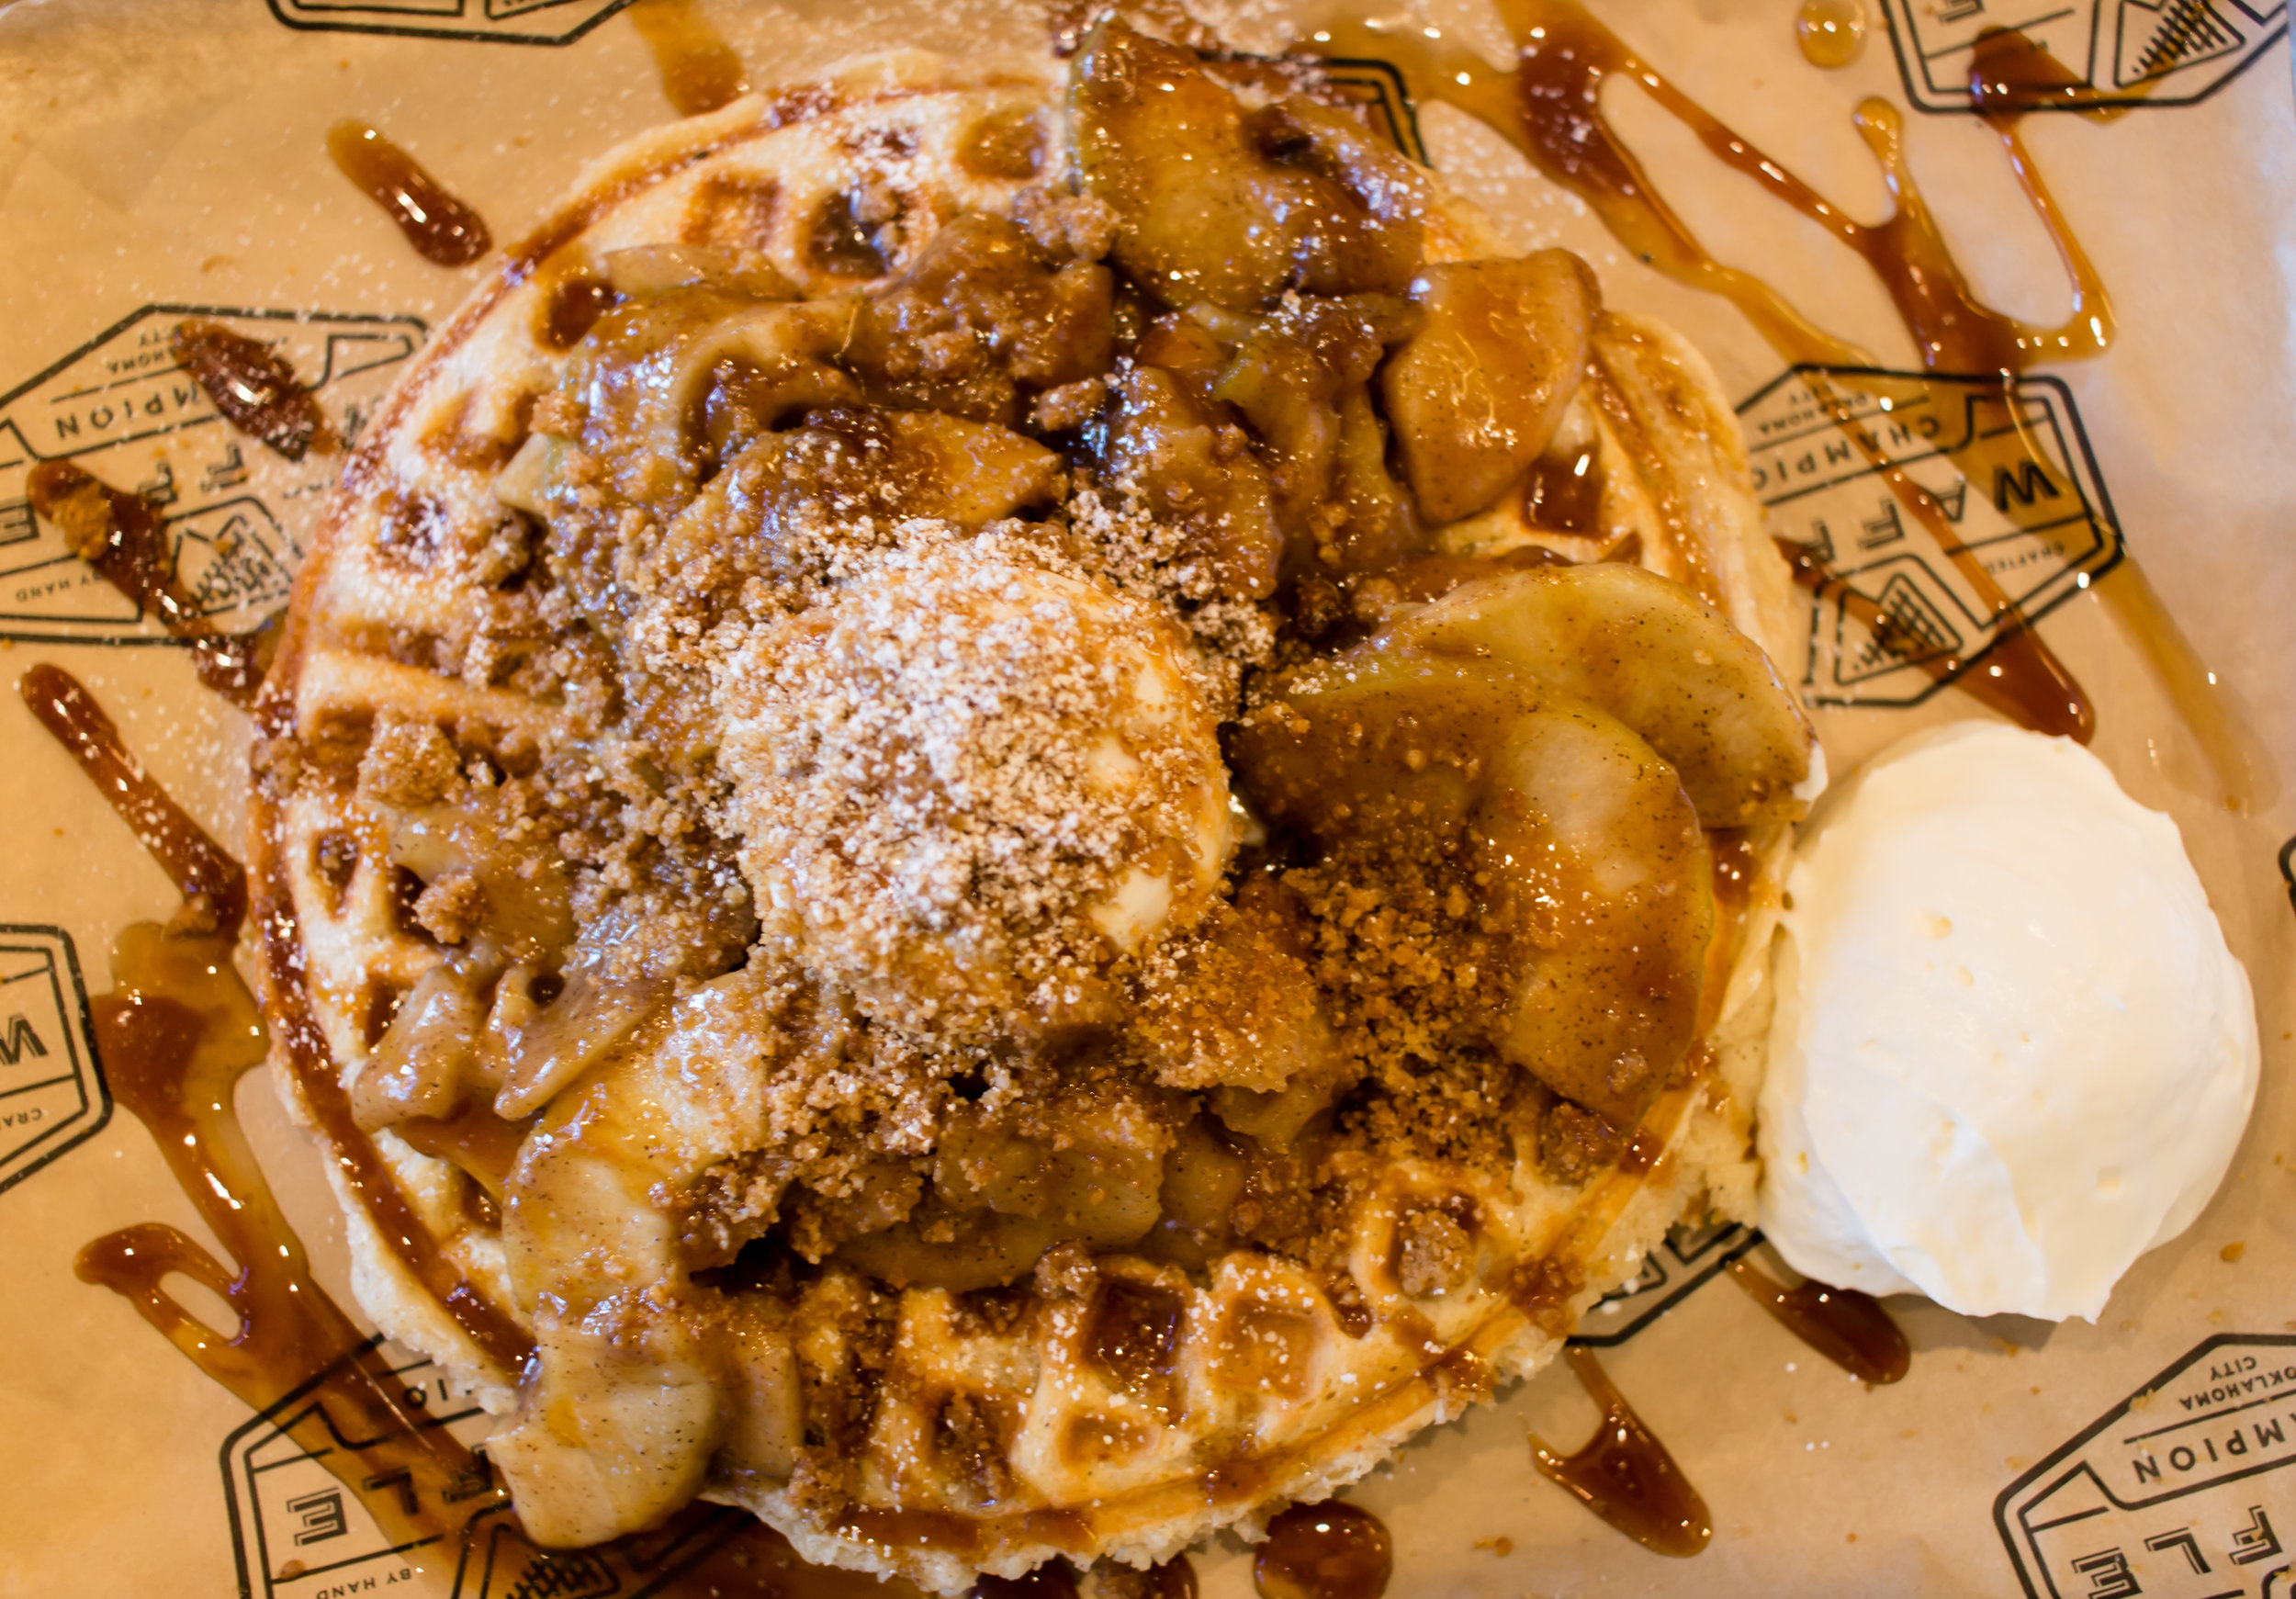 Edited Apple Pie Waffle Flat Lay.jpg